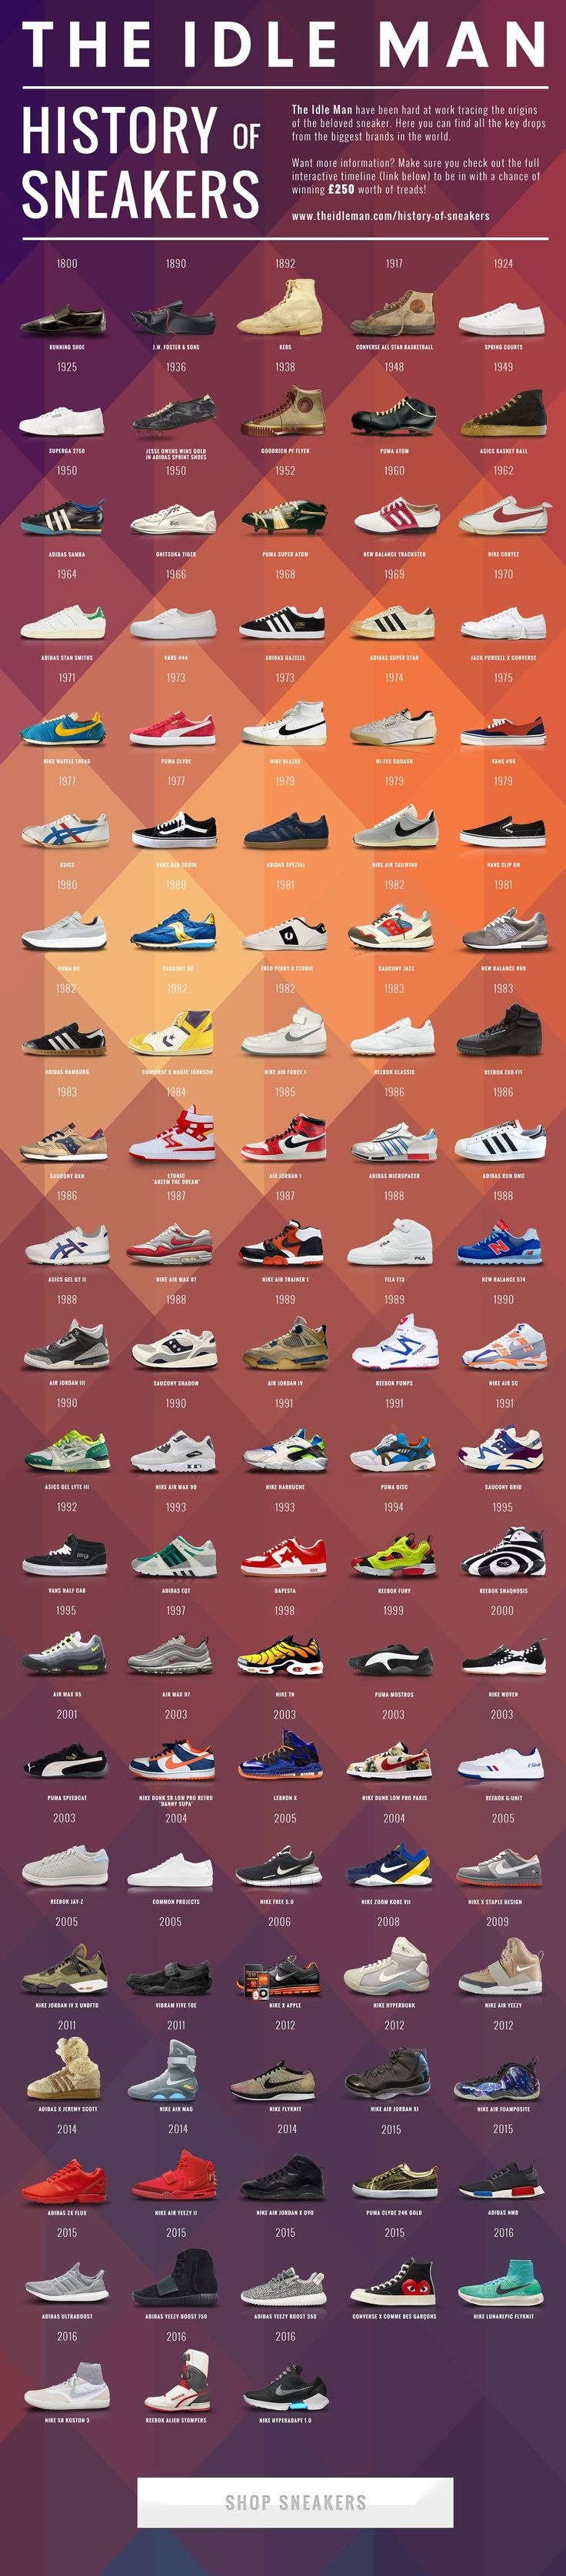 Everything from the first pair of sneakers, to the most expensive sneakers ever sold. Before shoes were made with rubber soles they had solid bottoms so were quite loud when walking. Sneakers got their name because when the user walked they wouldn't make a sound, making it easy to 'sneak' around. #infographics